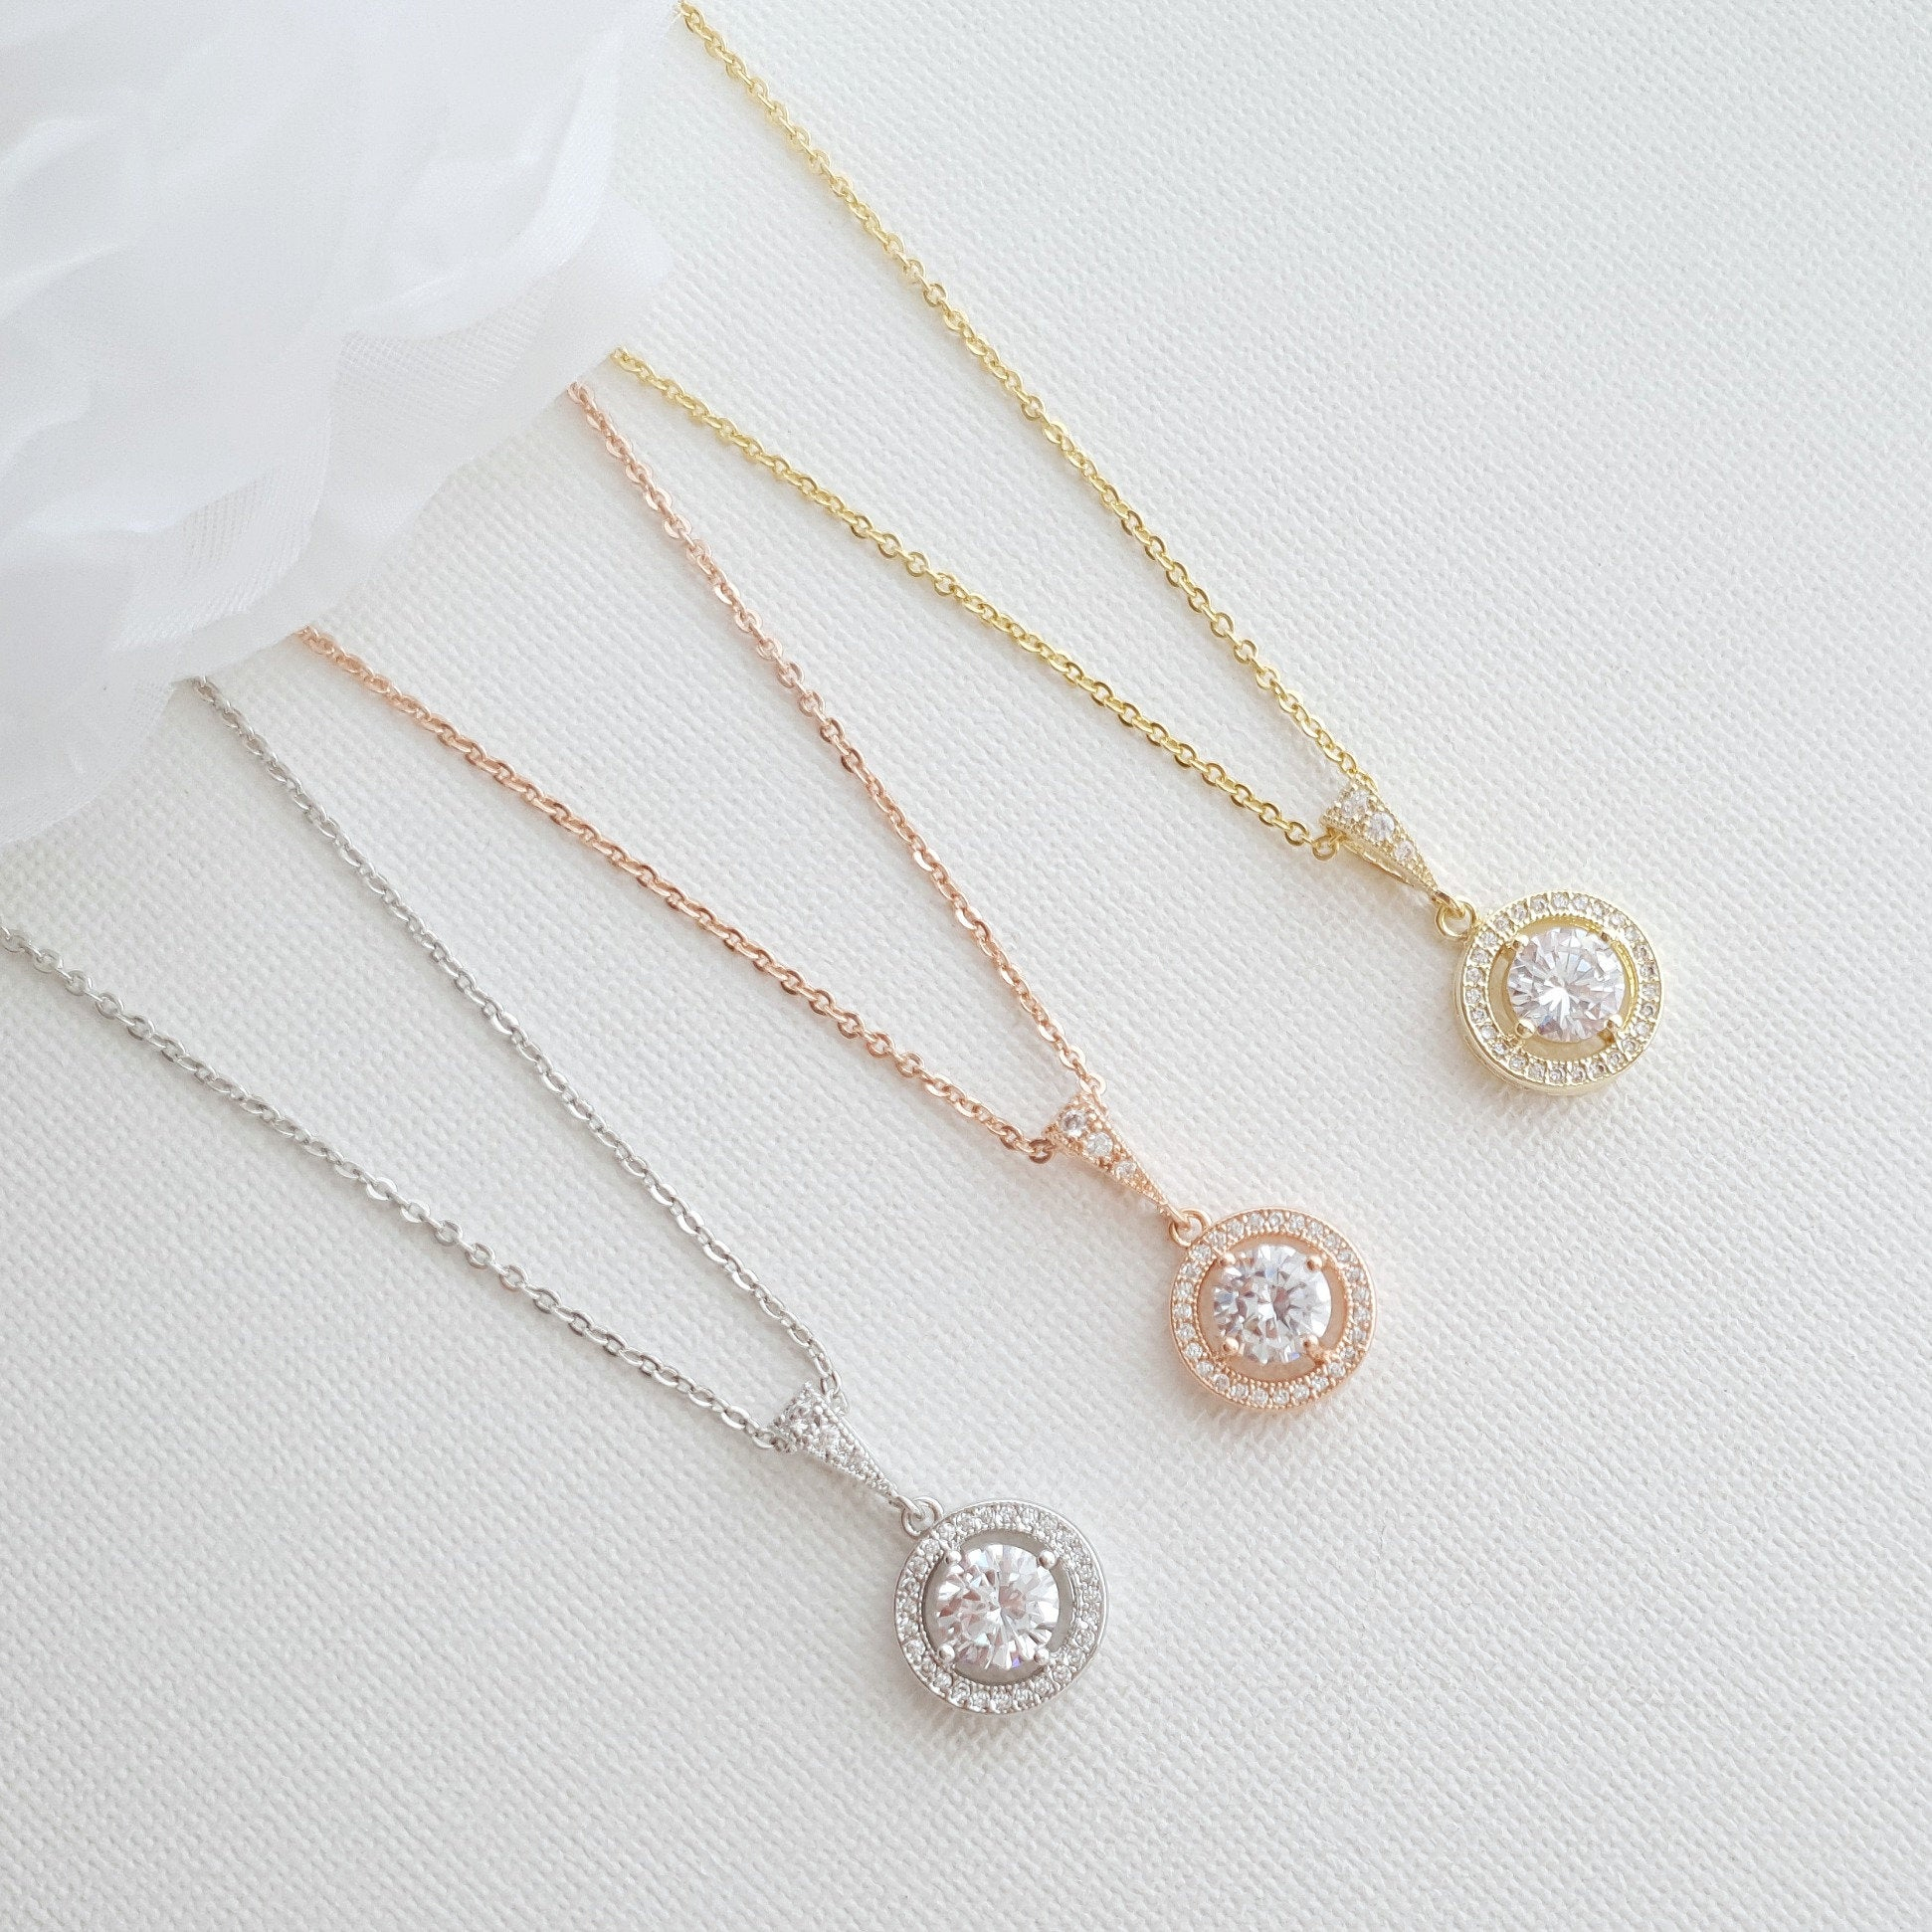 Crystal Bridal Pendant, Round Halo Wedding Pendant Necklace, Rose Gold Bridesmaid Necklace, Small Gold Pendant For Brides, Denise Throughout Most Popular Round Sparkle Halo Necklaces (View 18 of 25)